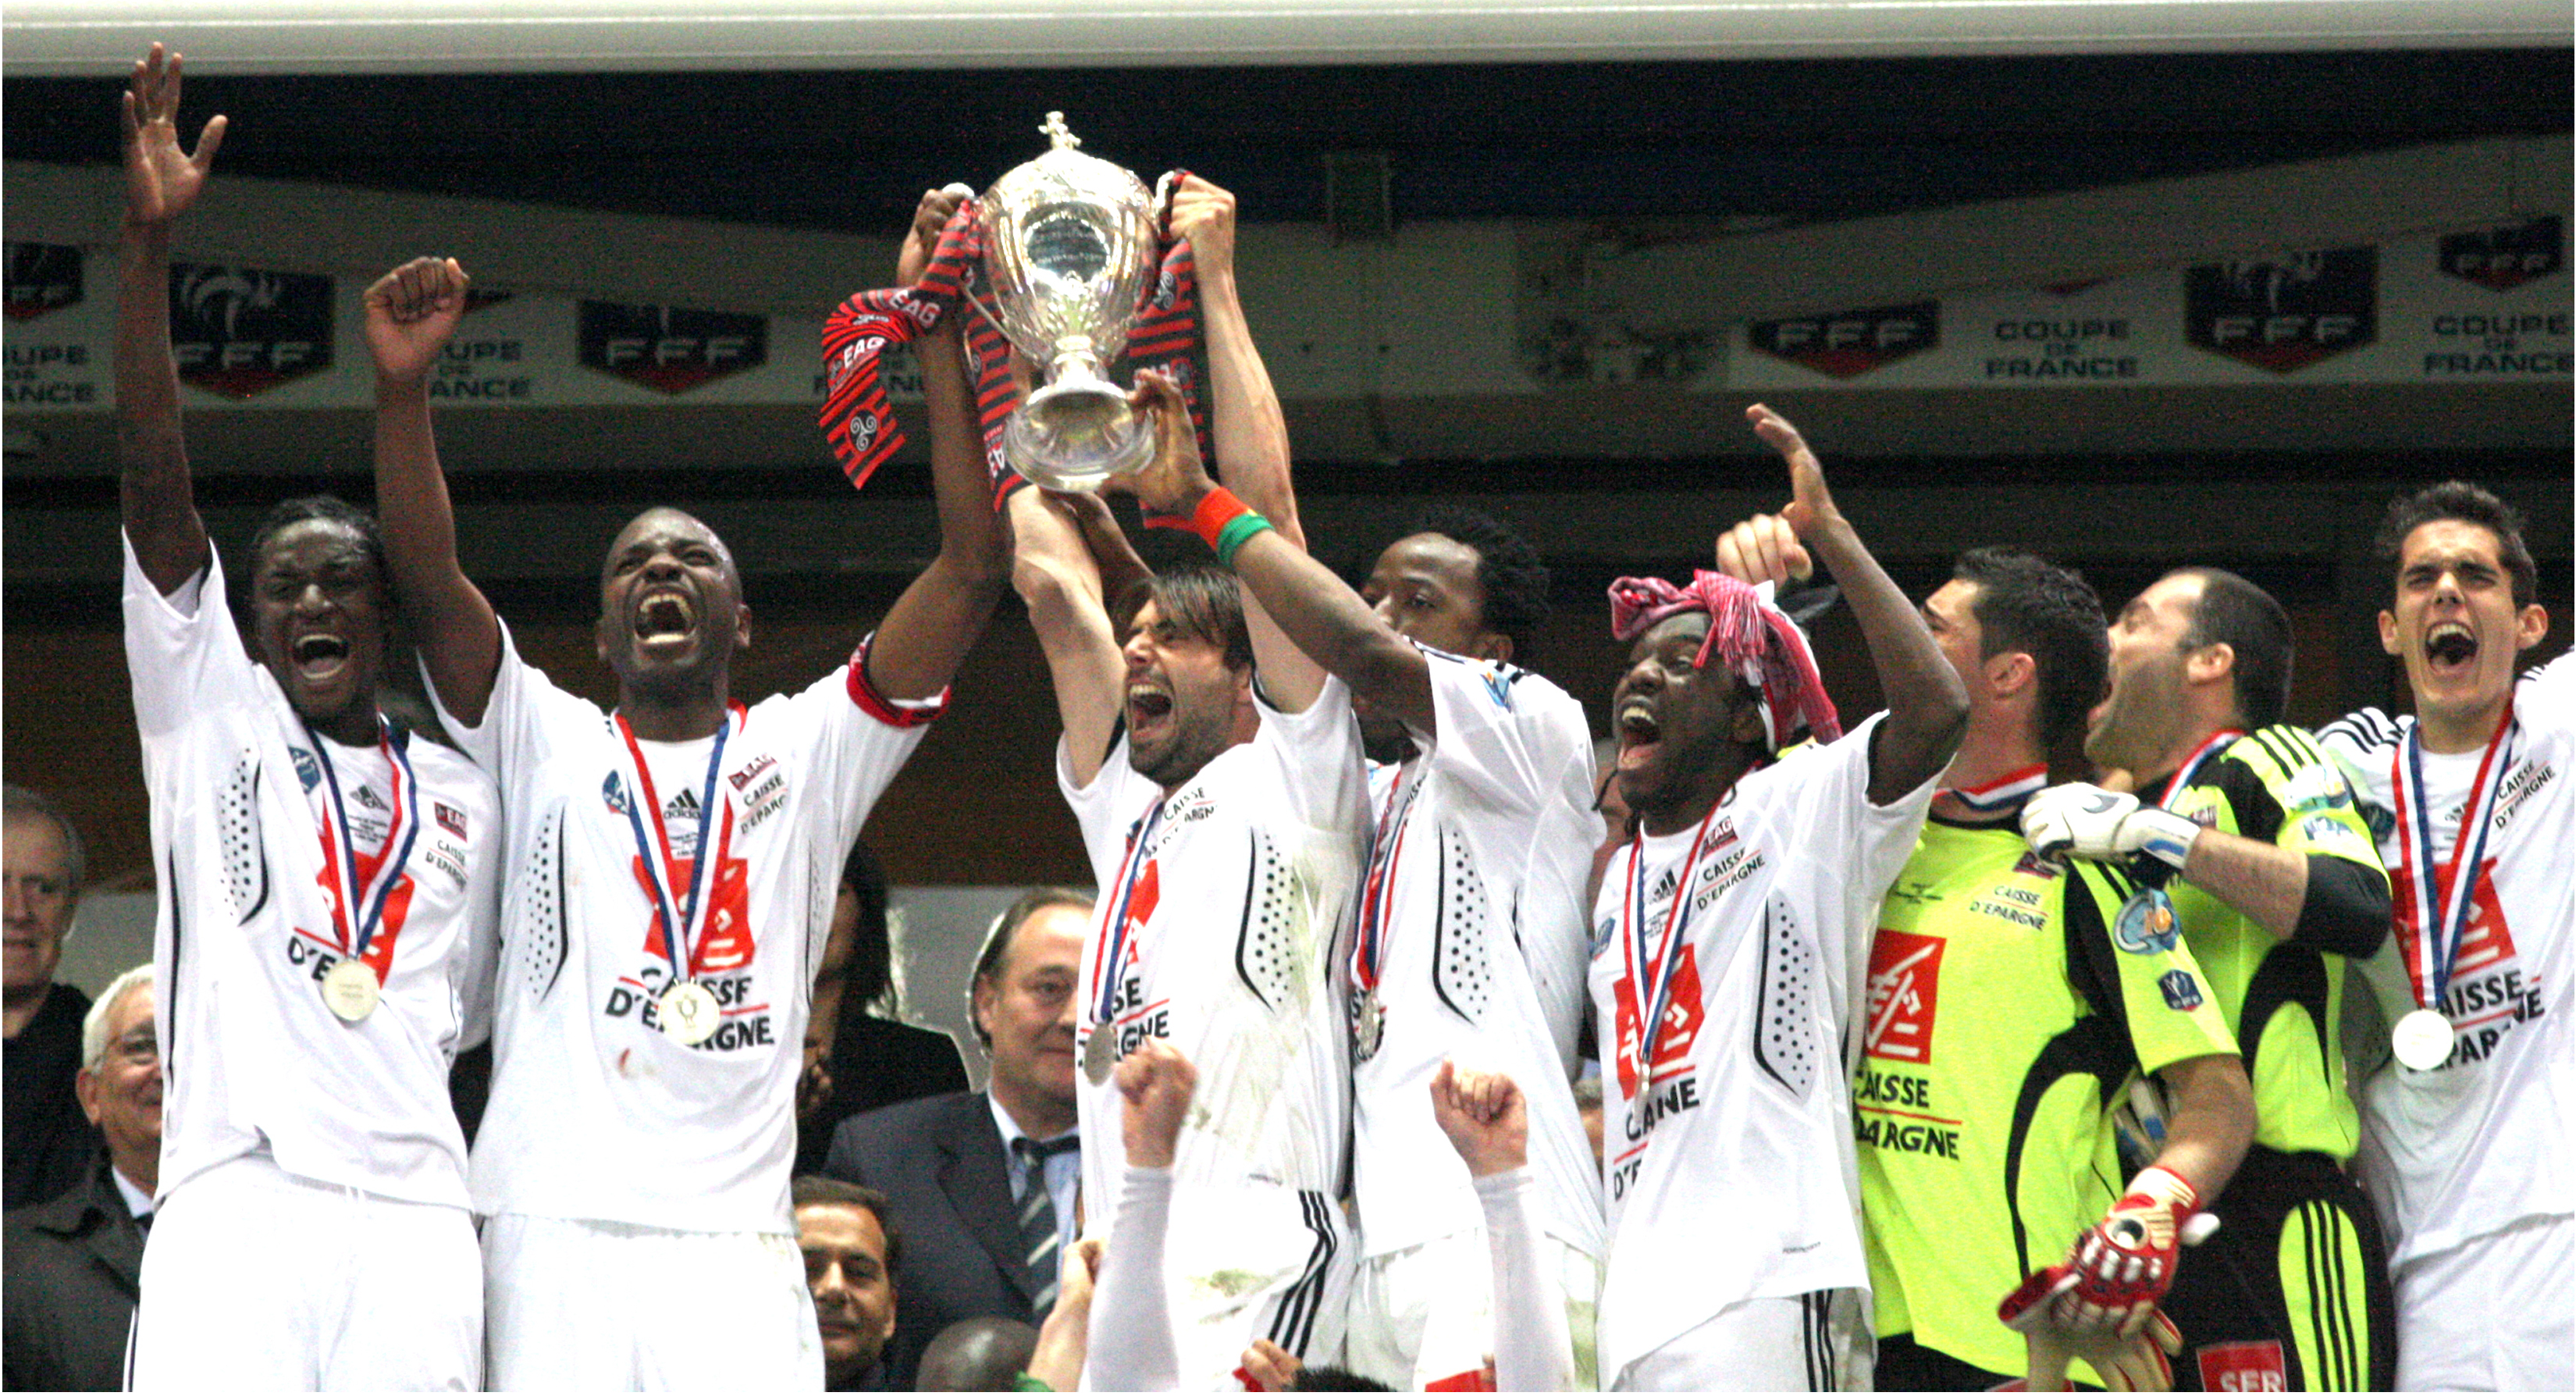 Places finale coupe de france 2014 guingamp - Places finale coupe de france ...